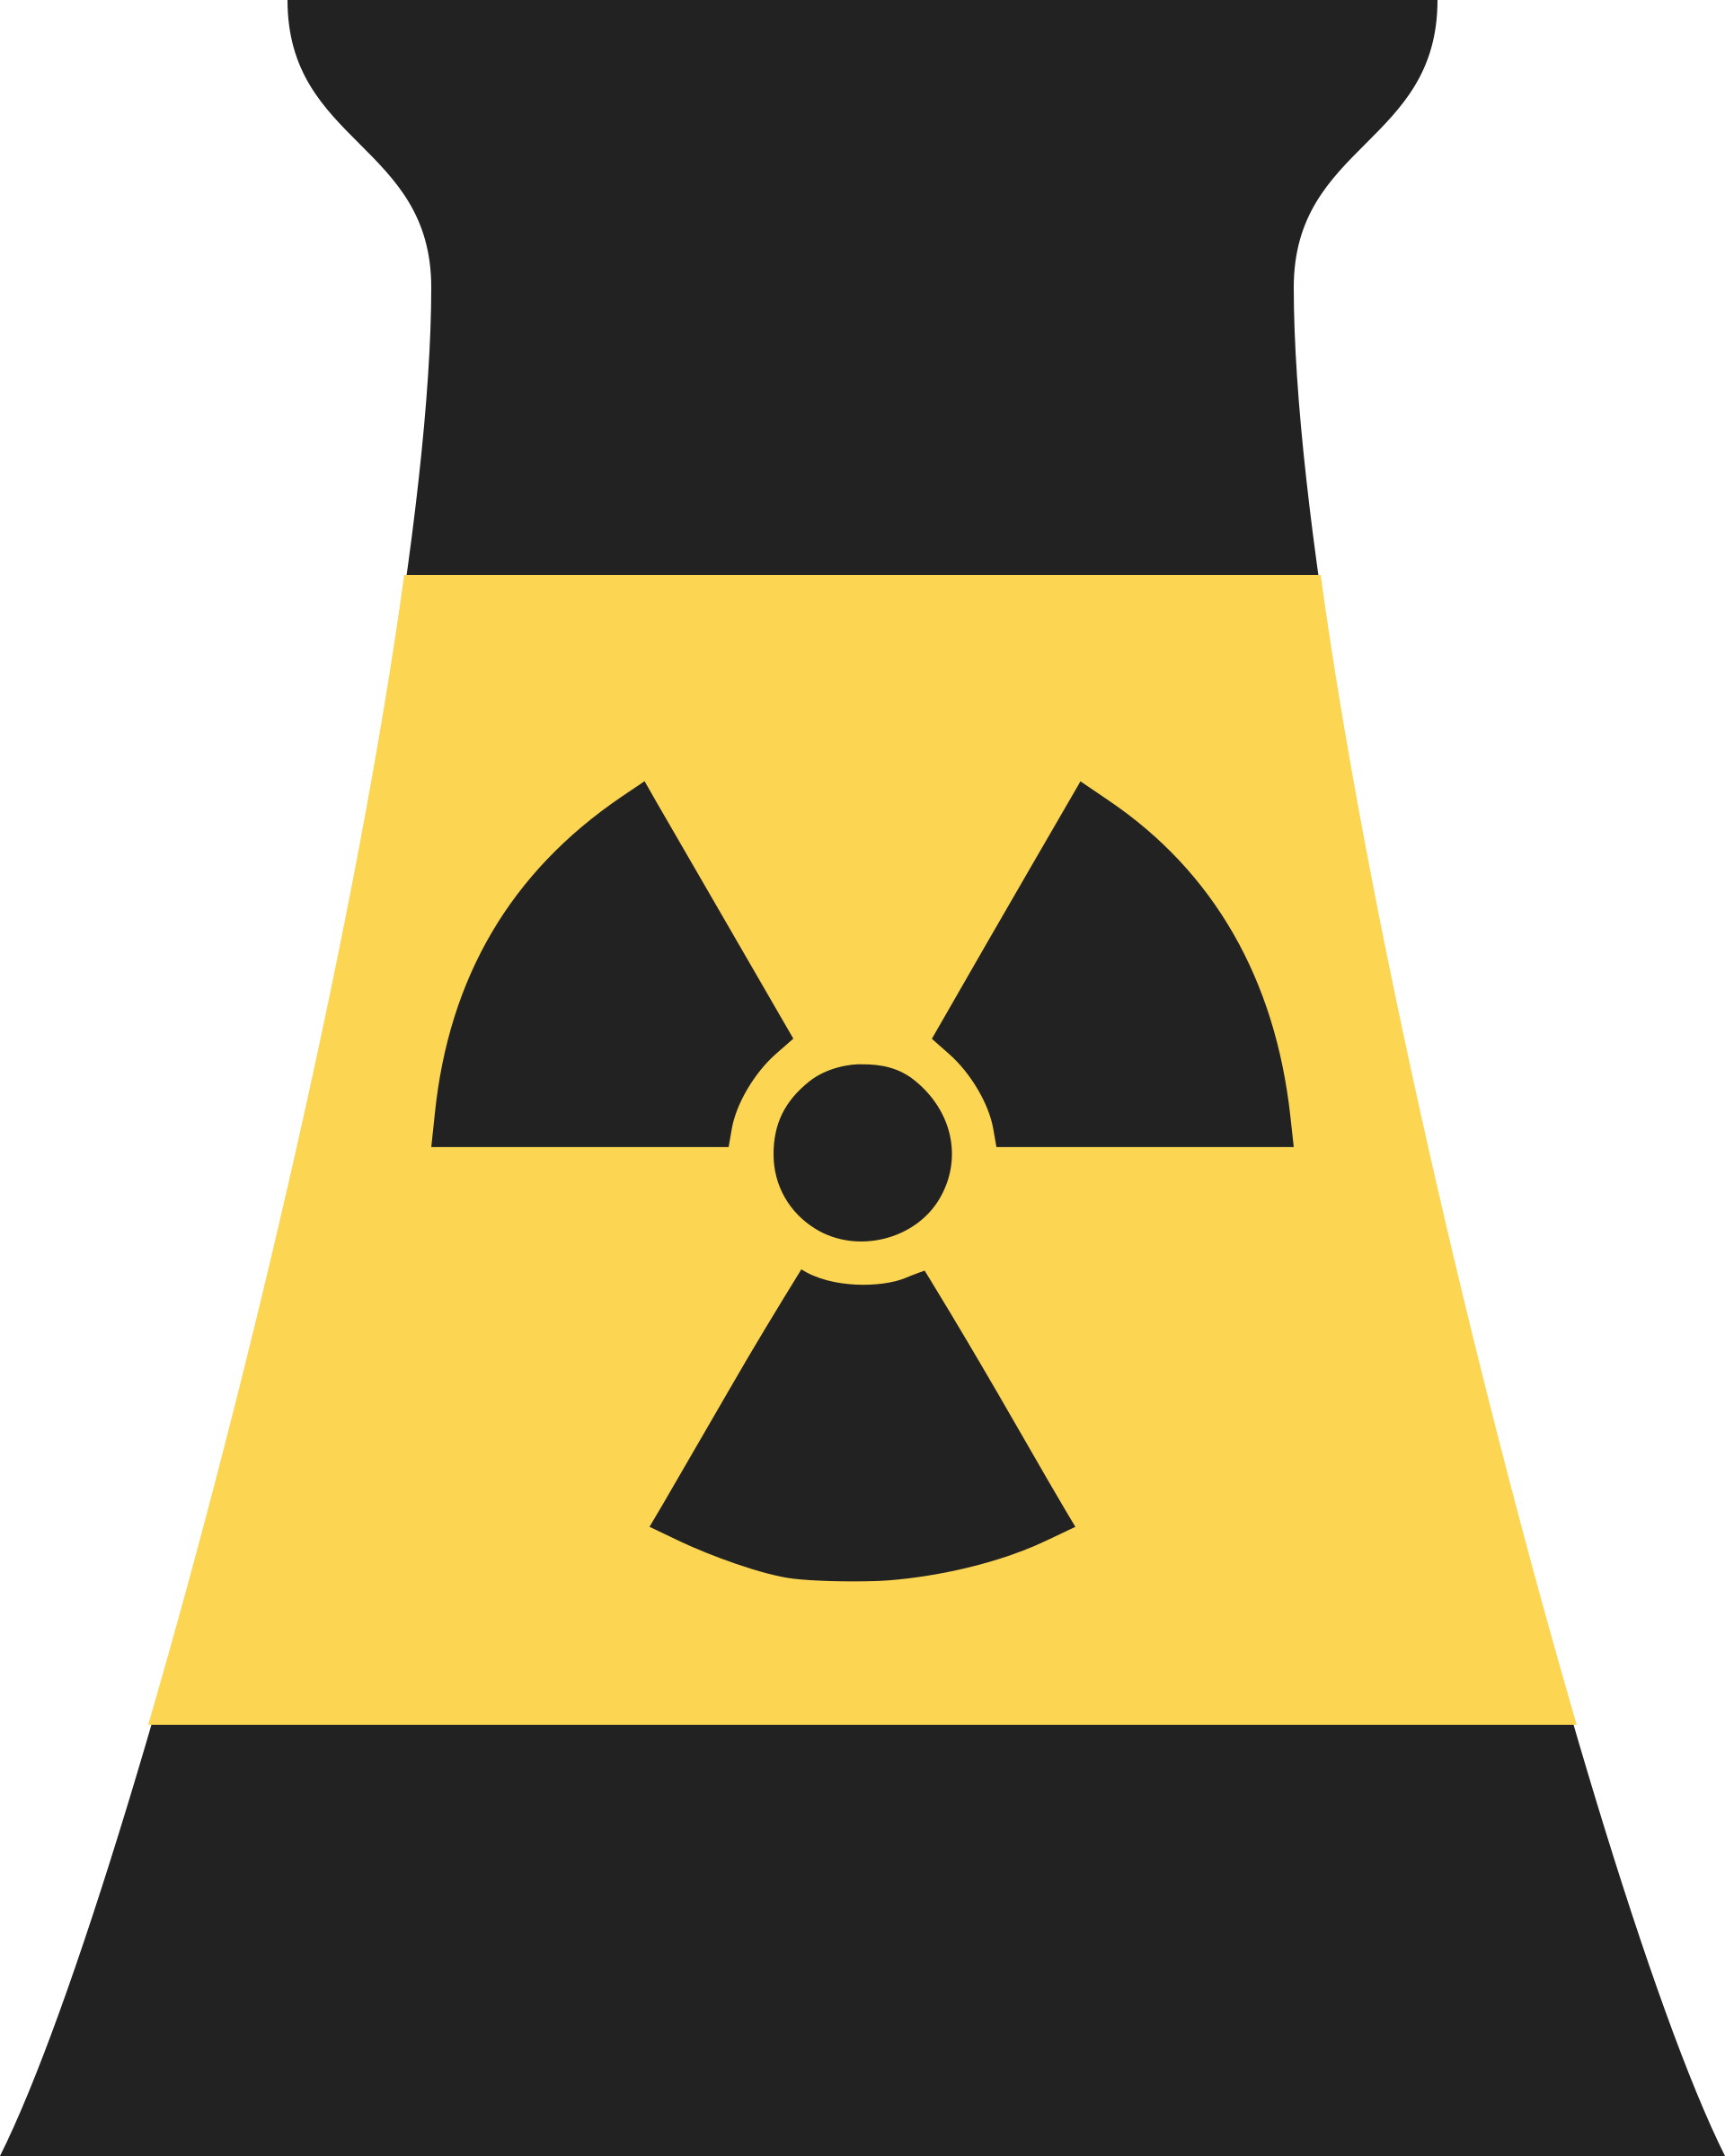 Nuclear Power Plant Reactor Symbol 2 by qubodup